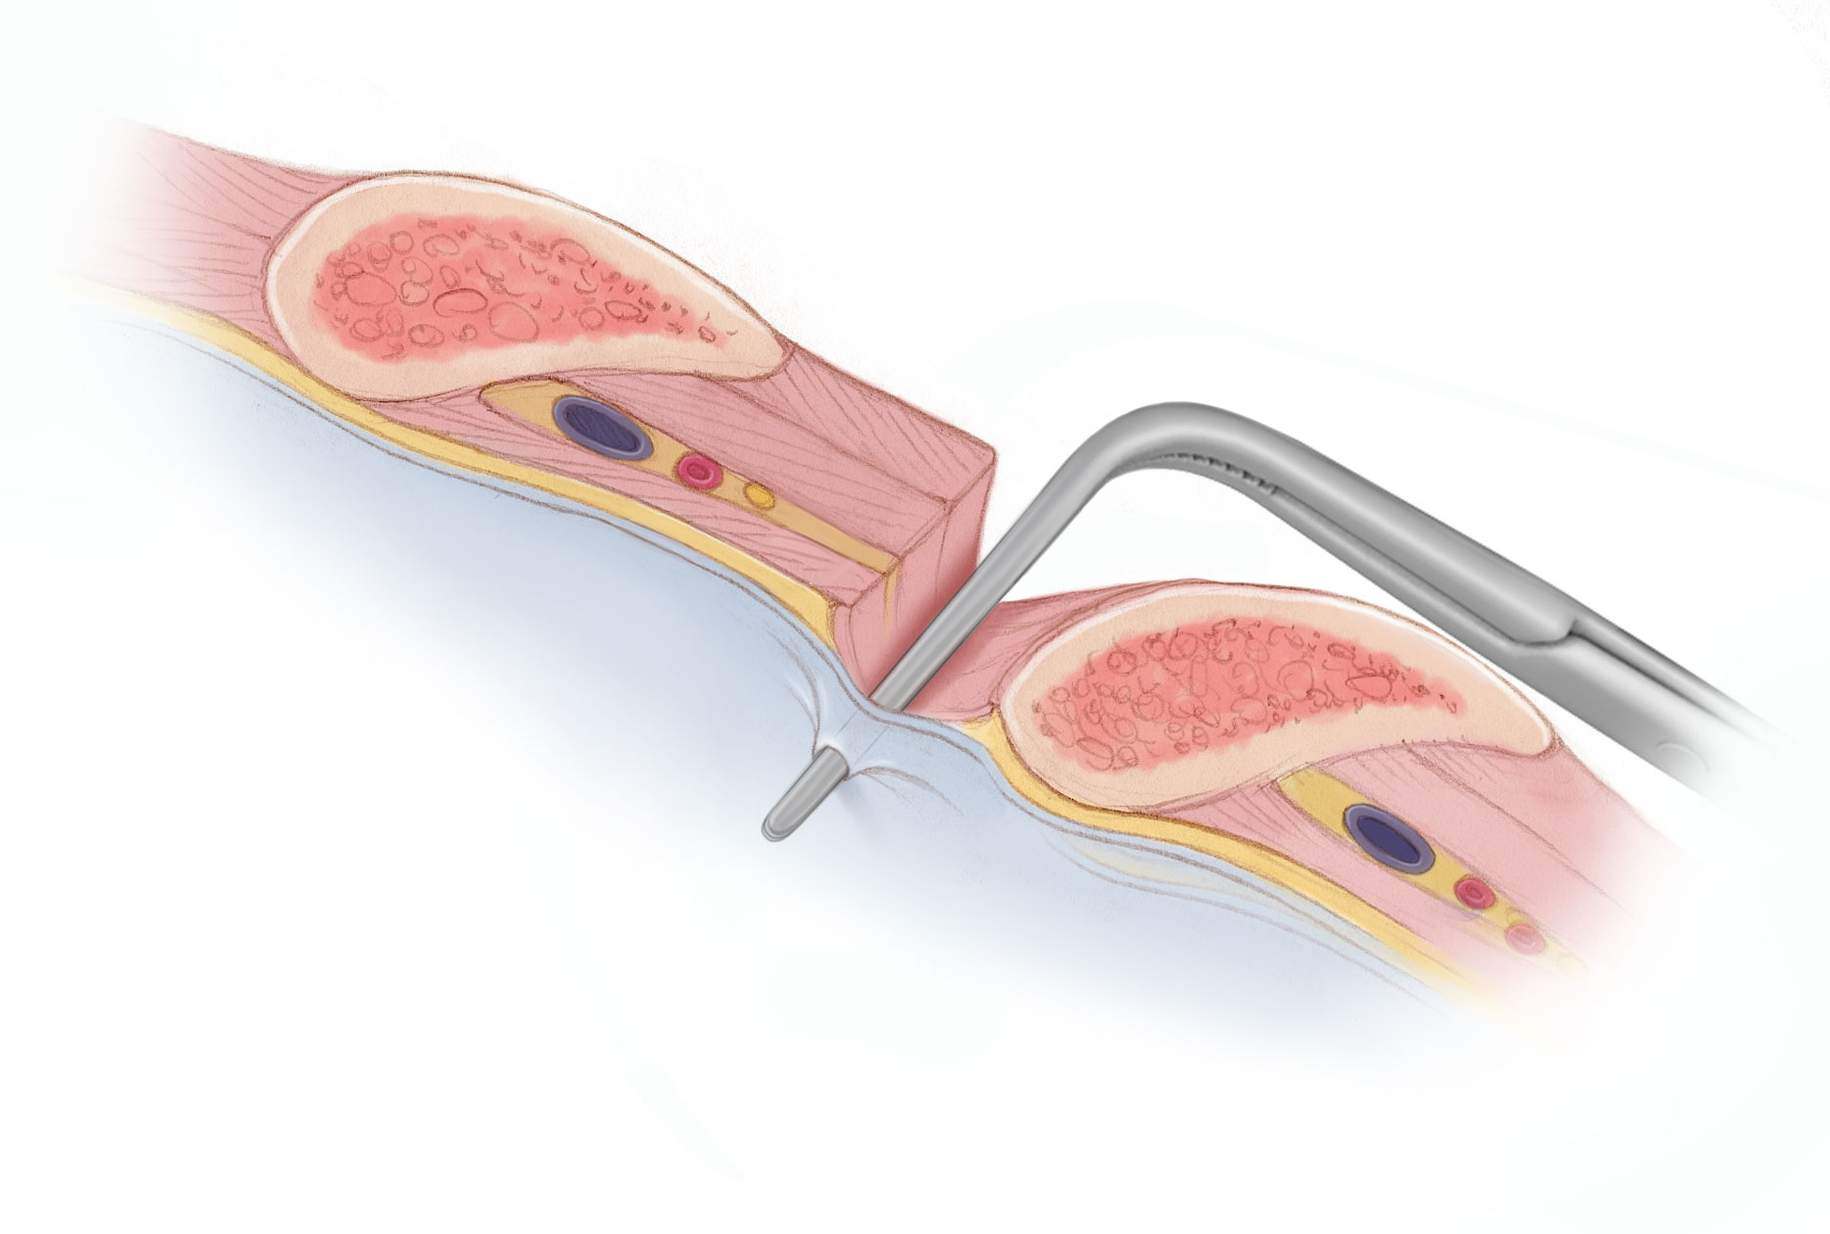 Figure 3: A fine instrument is used to dissect the muscle and puncture the pleura. The dissection should follow the top of a rib to avoid the underlying neurovascular bundle.